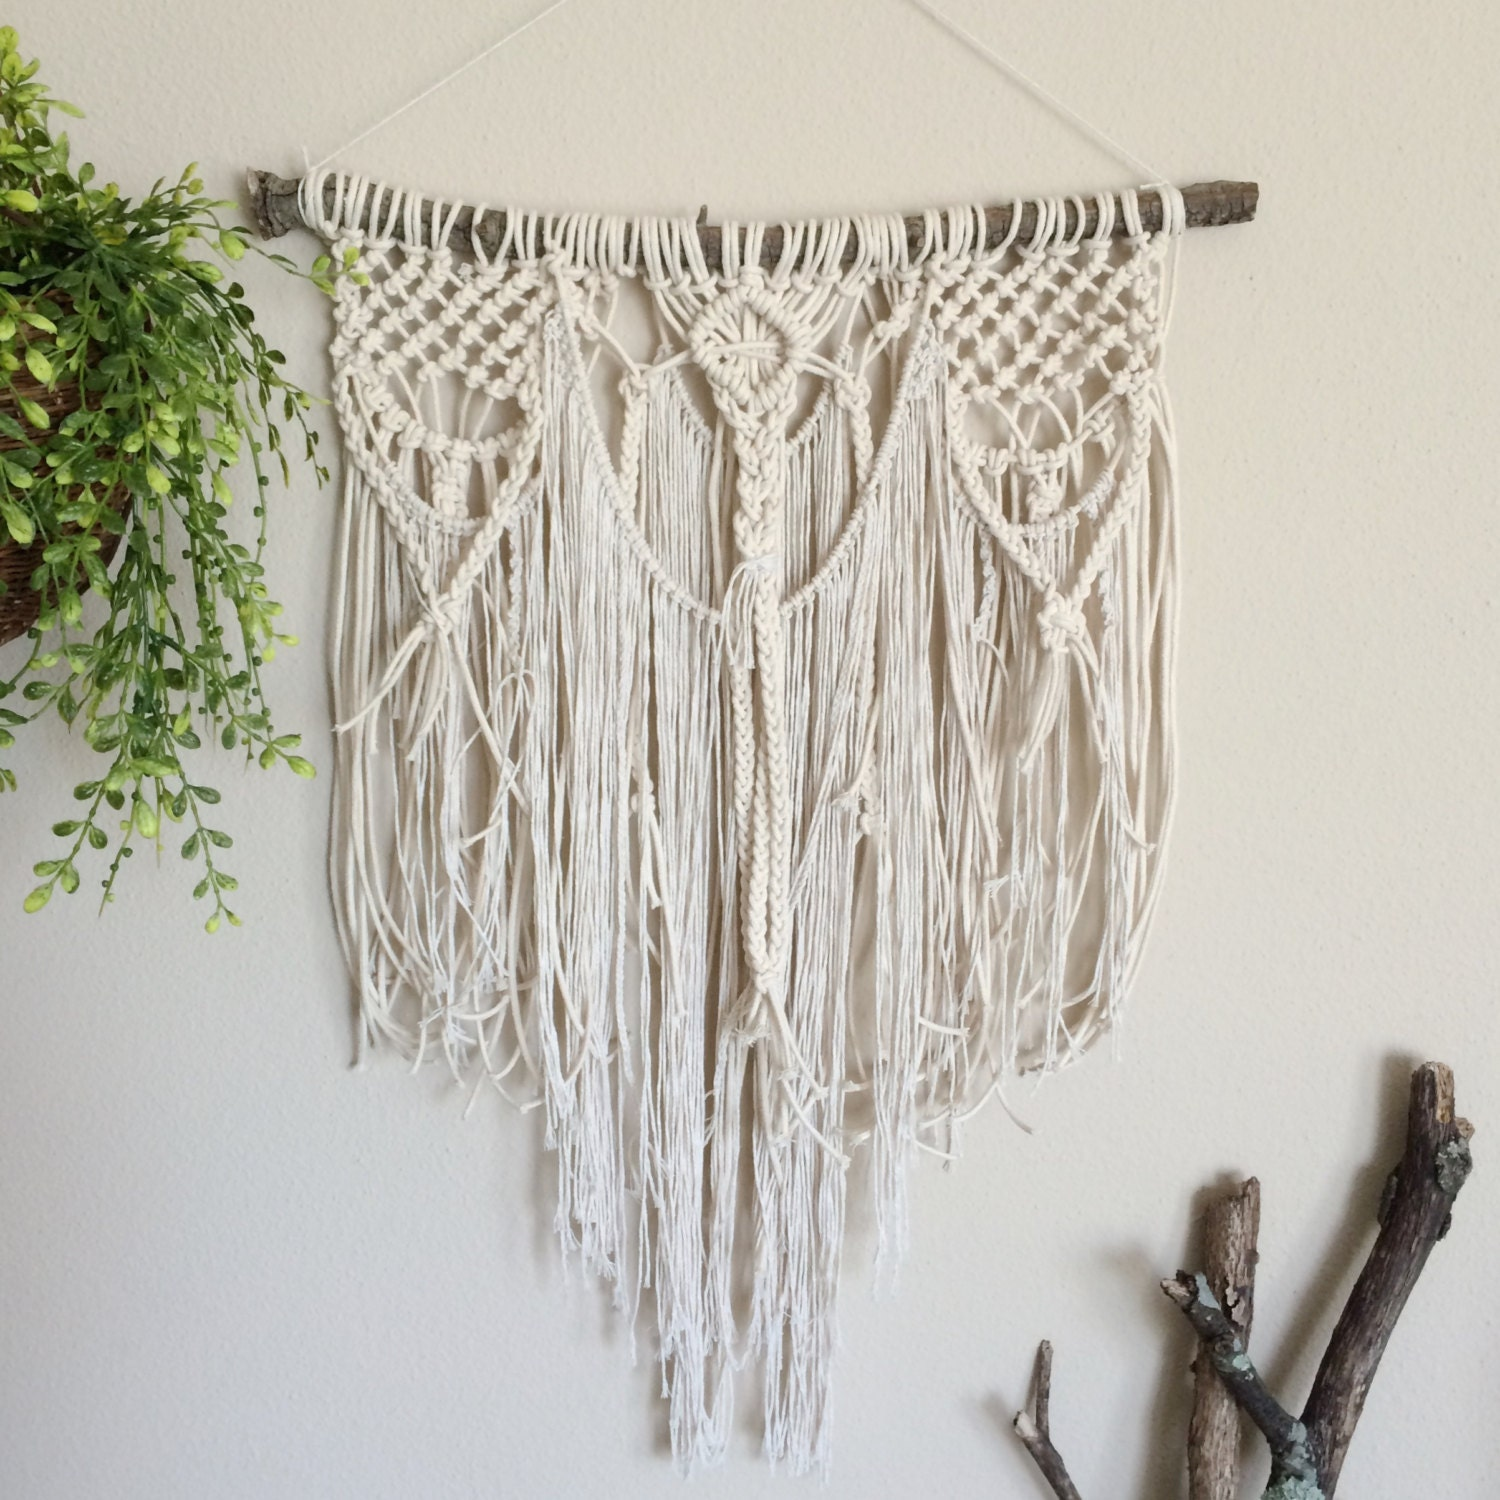 Macrame wall hanging tree branch boho wall decor rustic for Hanging wall decor